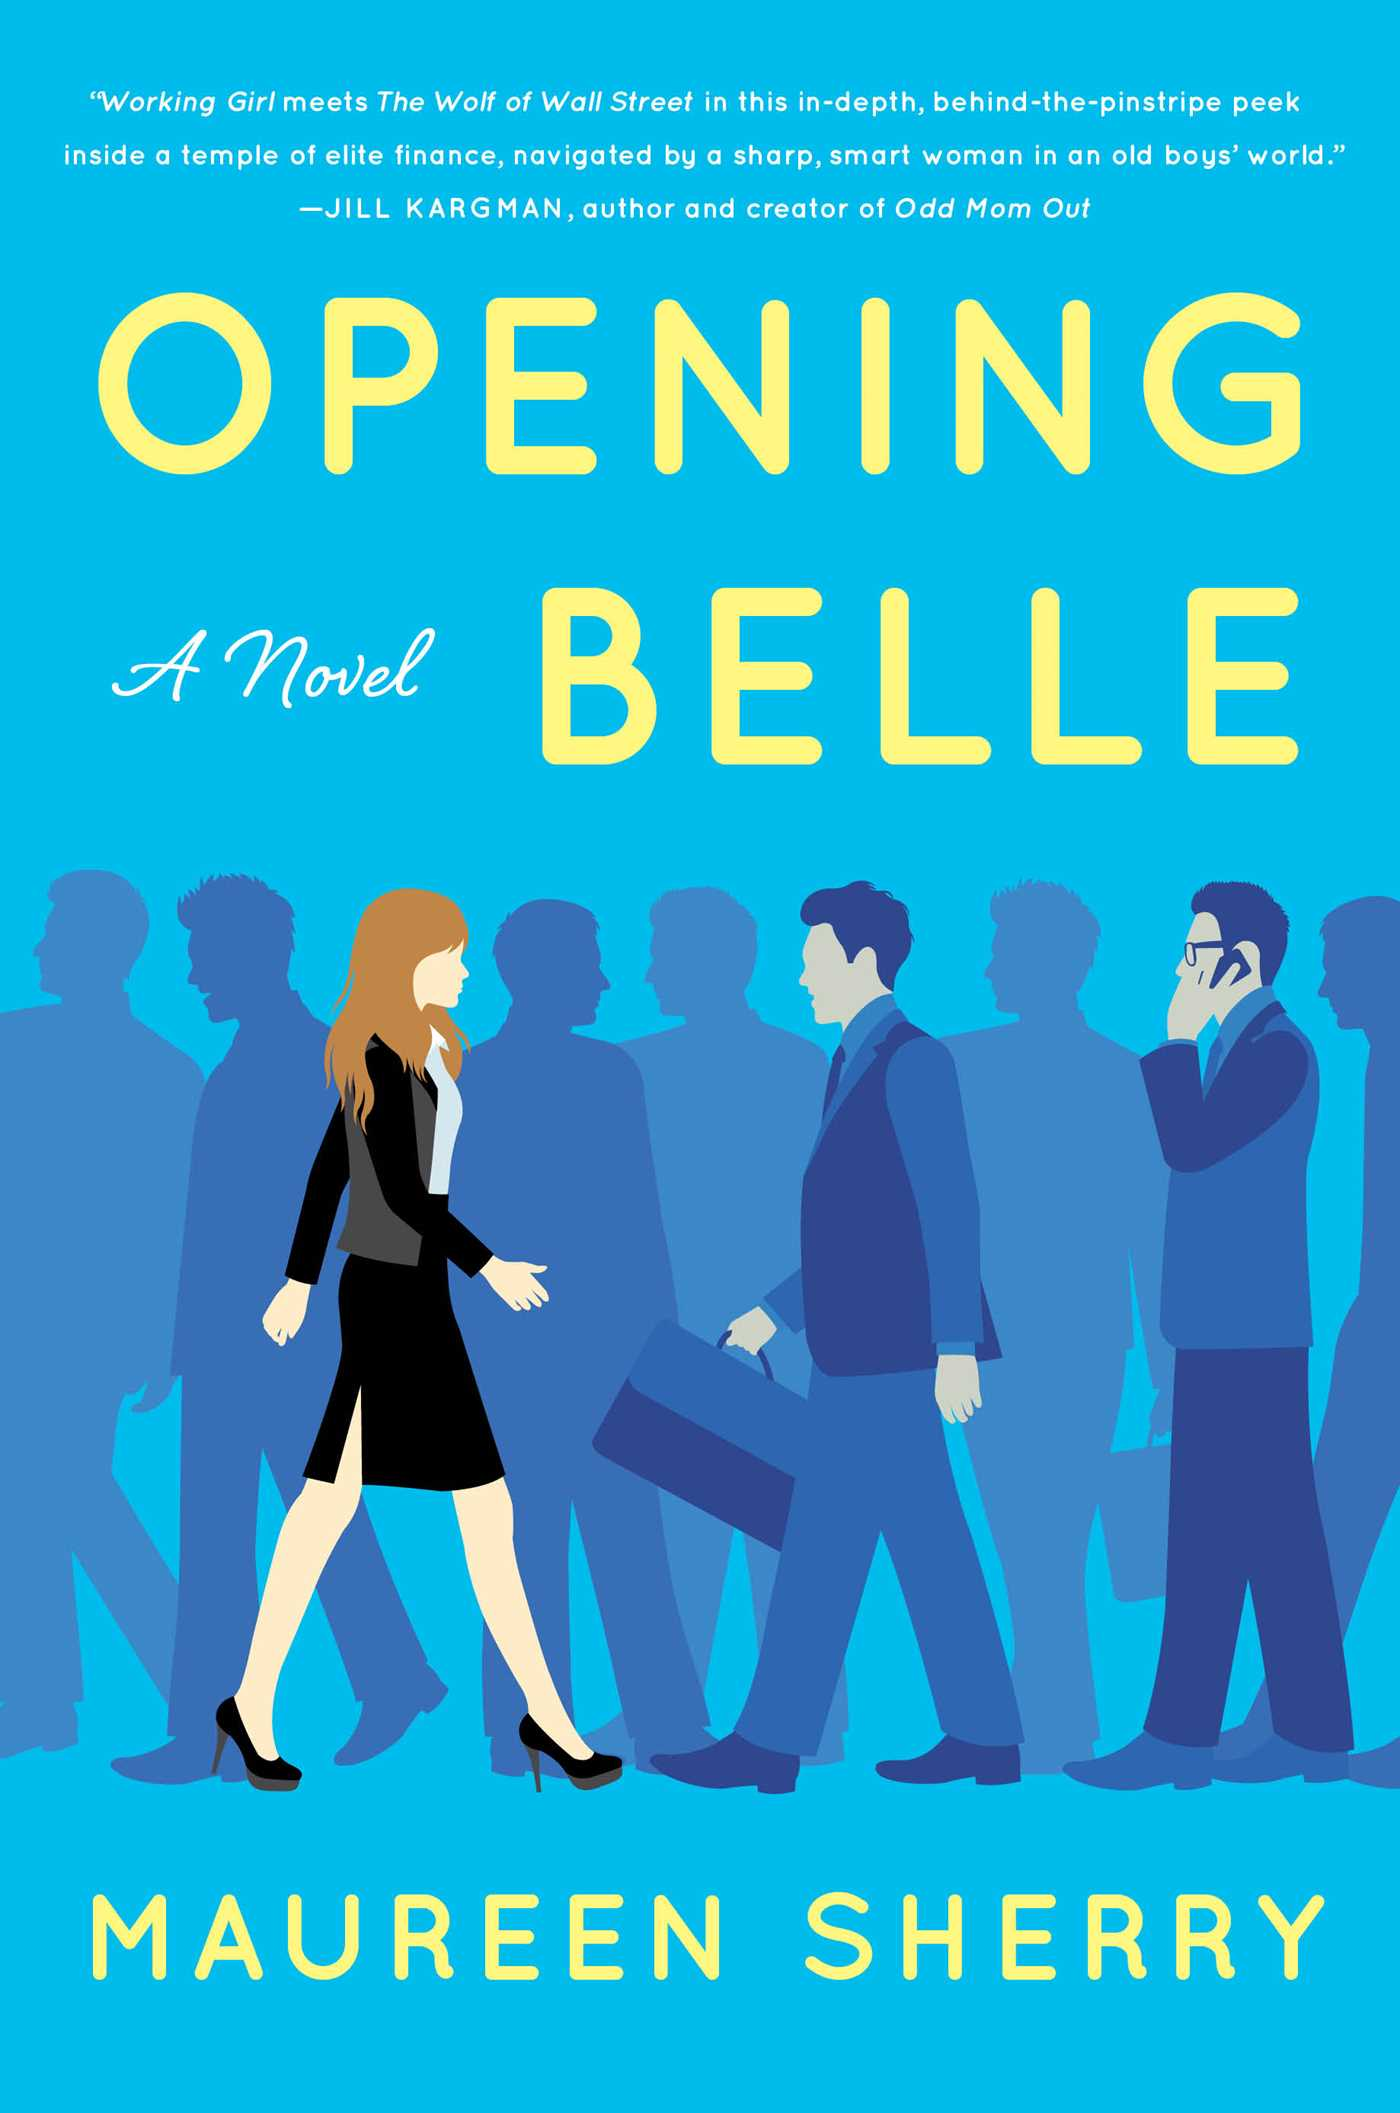 Opening belle 9781501110627 hr